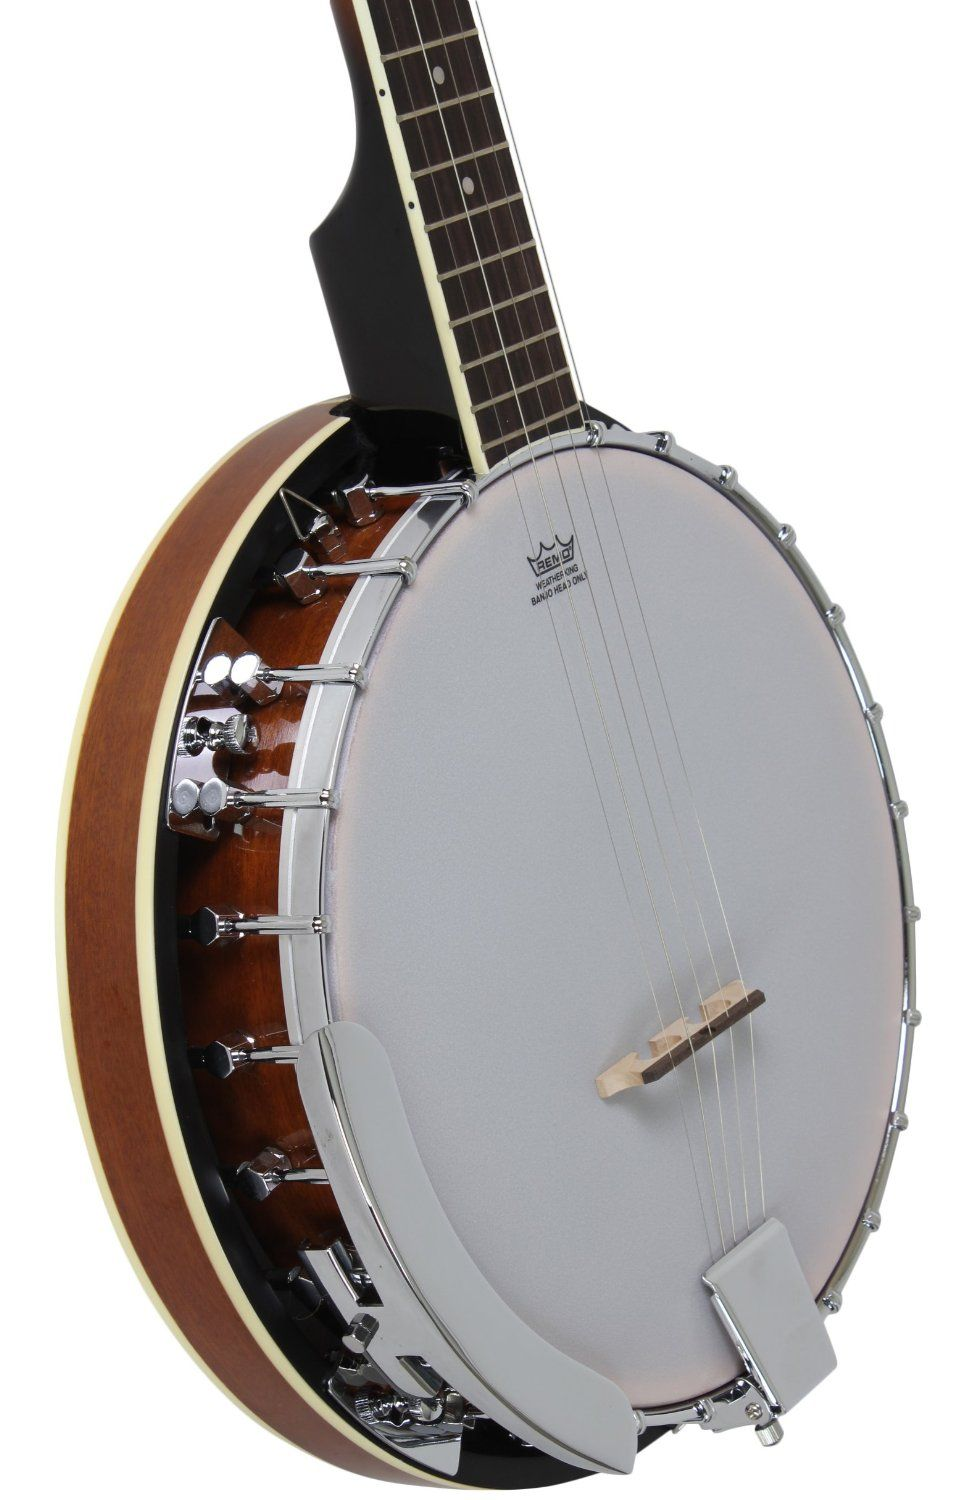 Amazon.com: 5-String Banjo 24 Bracket with Closed Solid Back and Geared 5th Tuner By Jameson Guitars: Musical Instruments